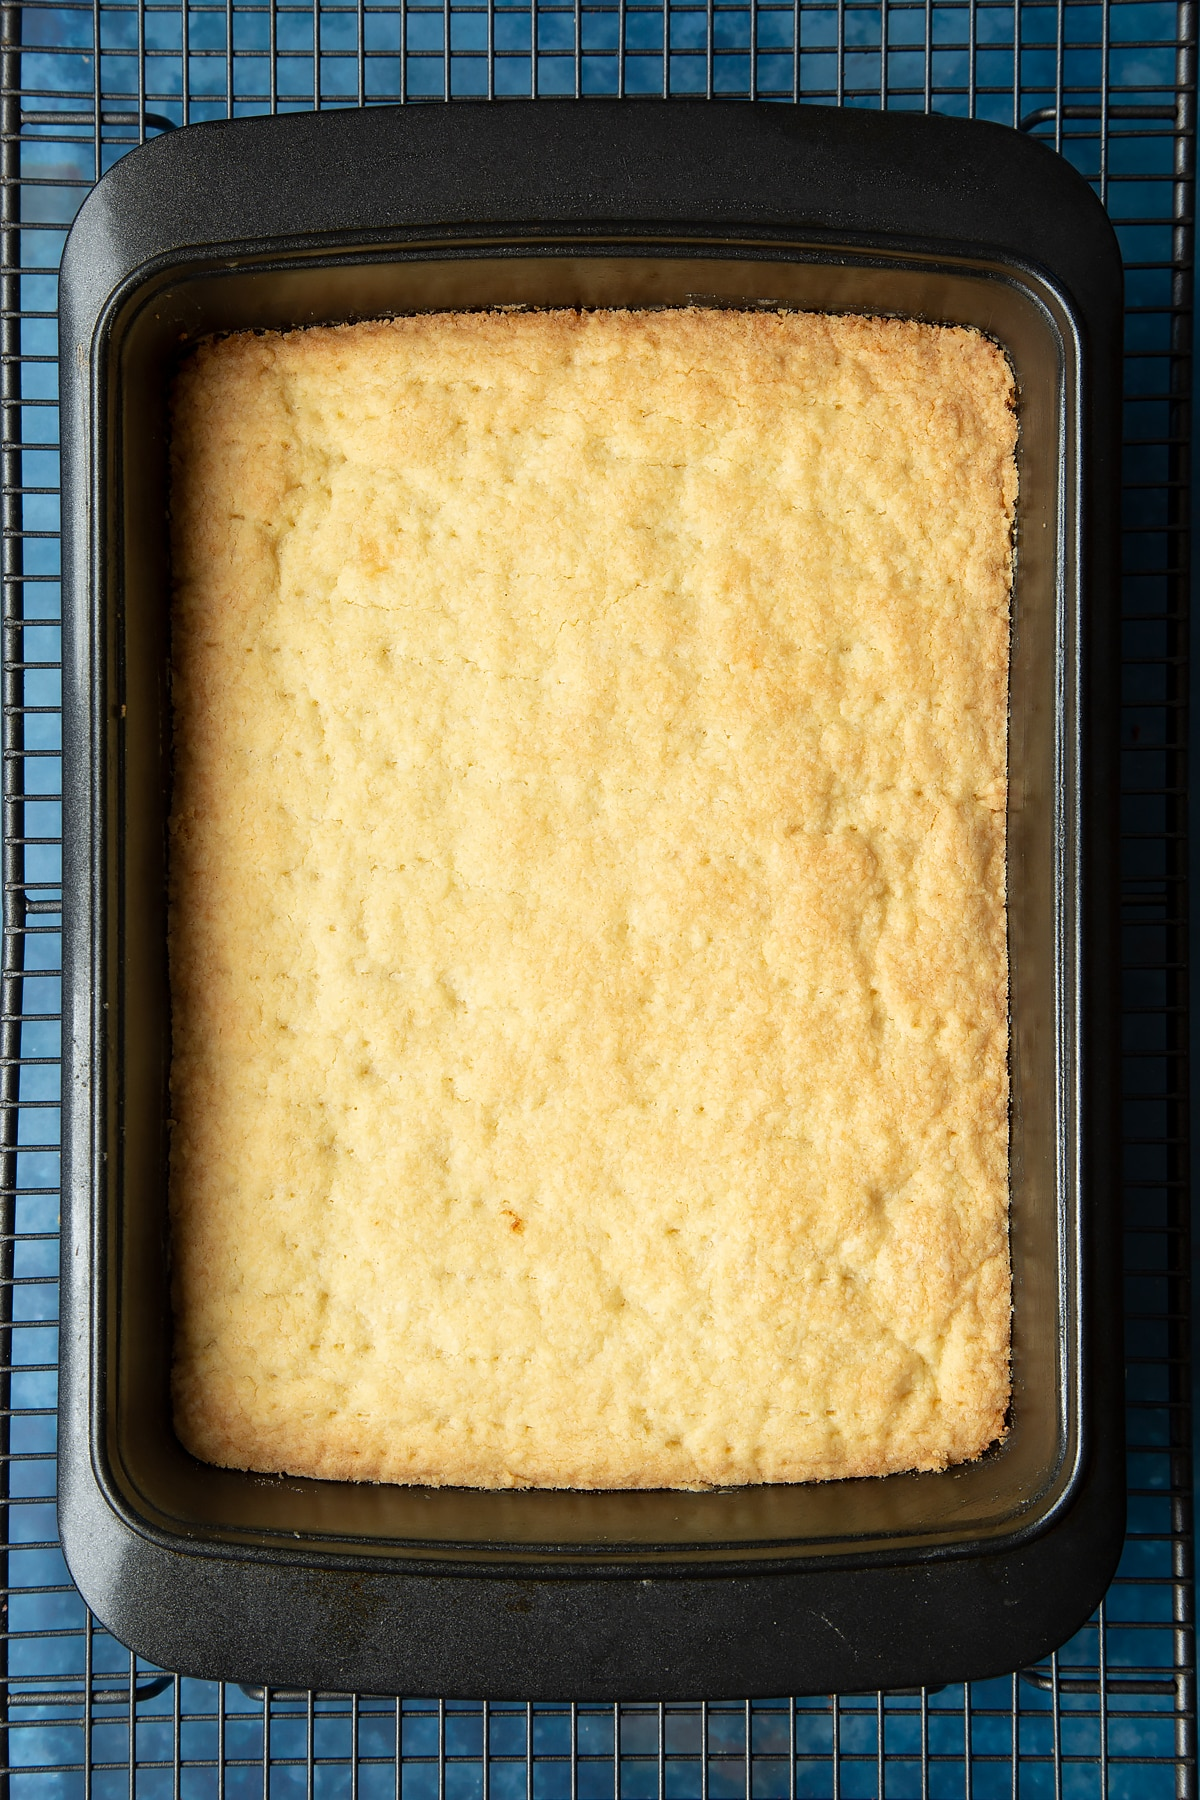 Cooked shortbread in a tray on a cooling rack.